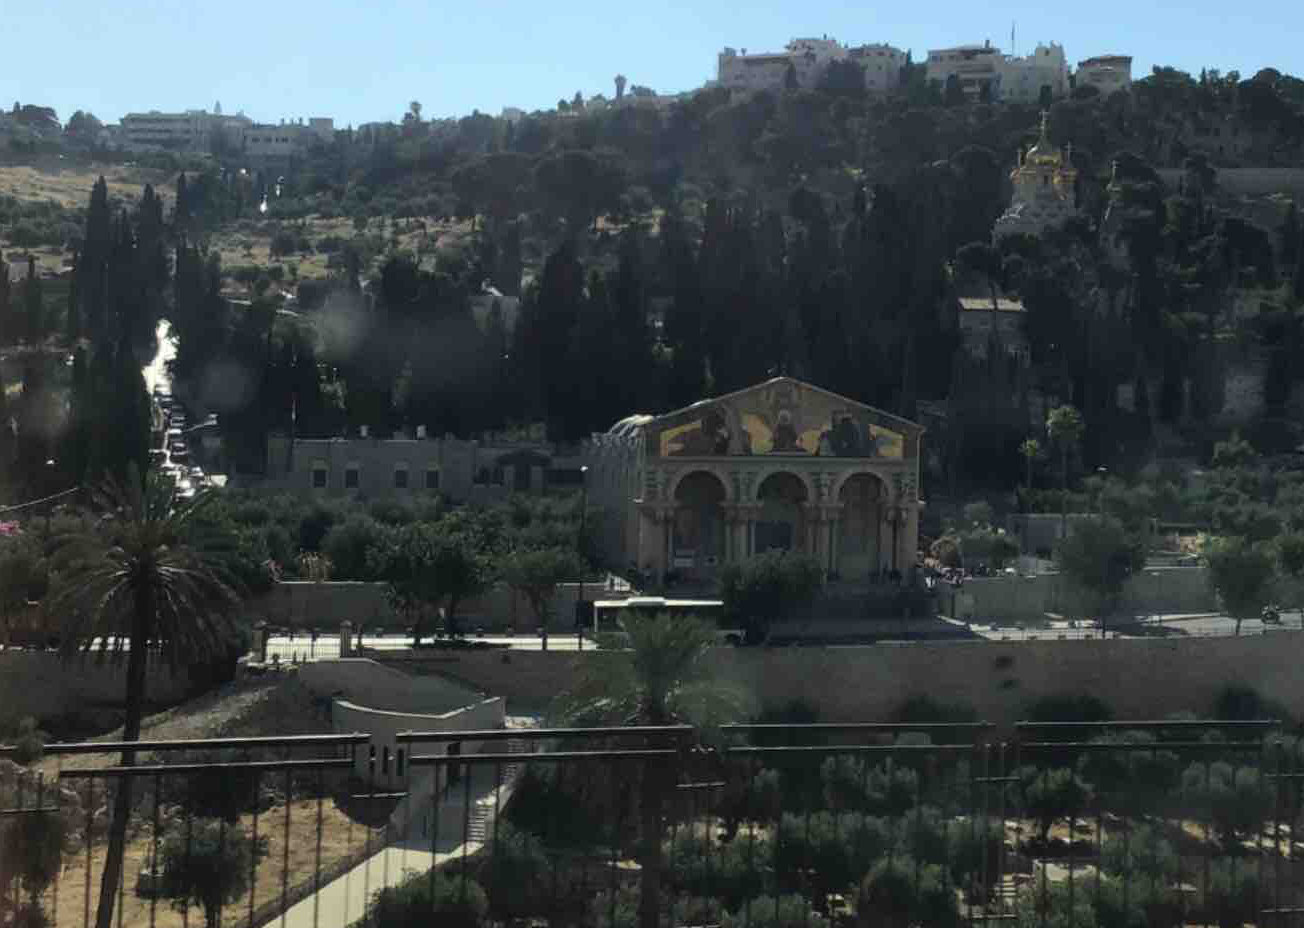 View of Kidron Valley.